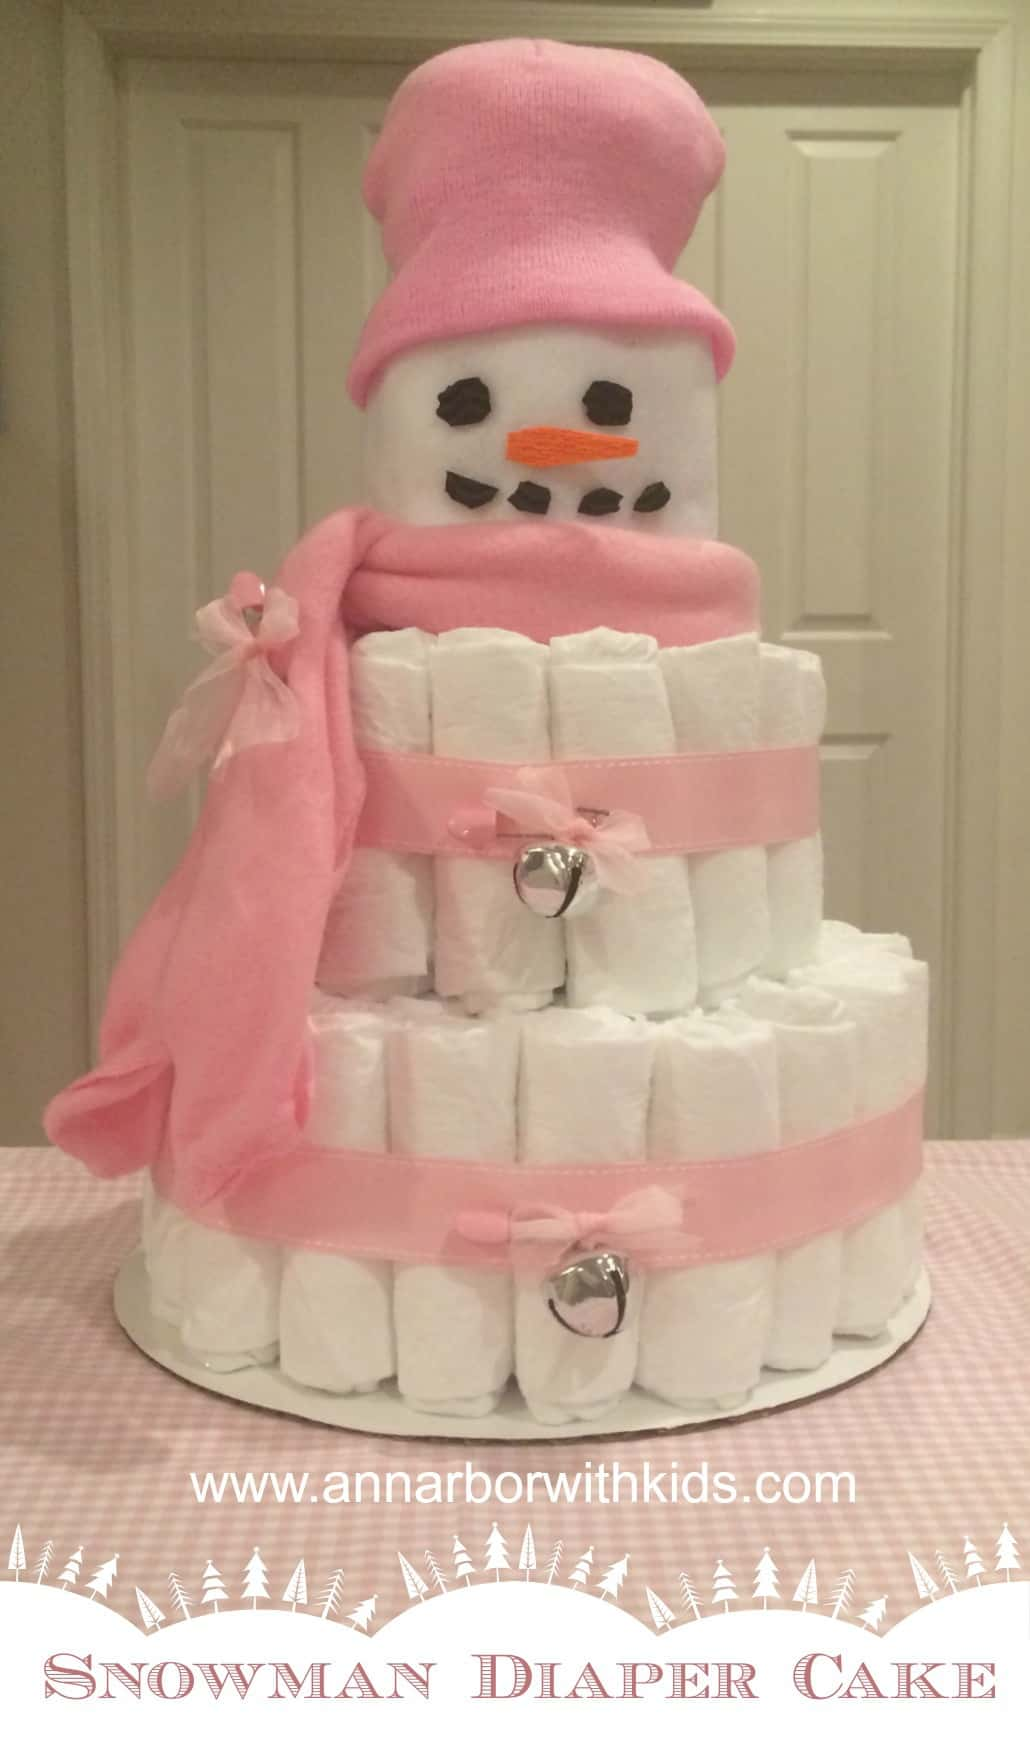 How To Make A Snowman Diaper Cake